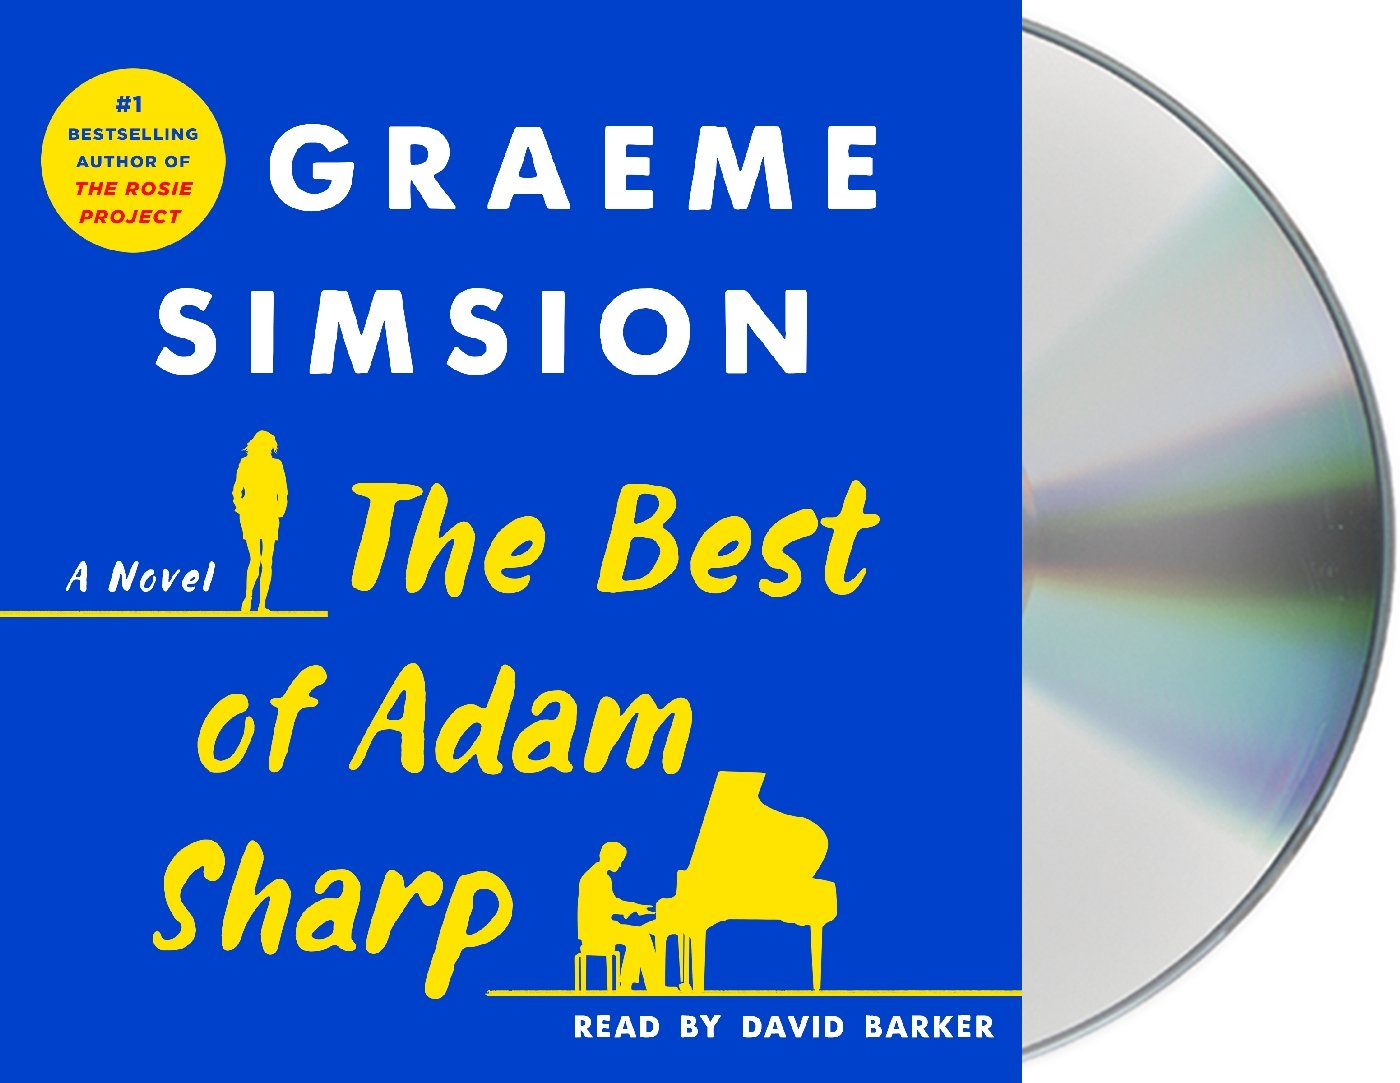 The Best Of Adam Sharp: Amazon: Graeme Simsion, David Barker:  9781427286253: Books